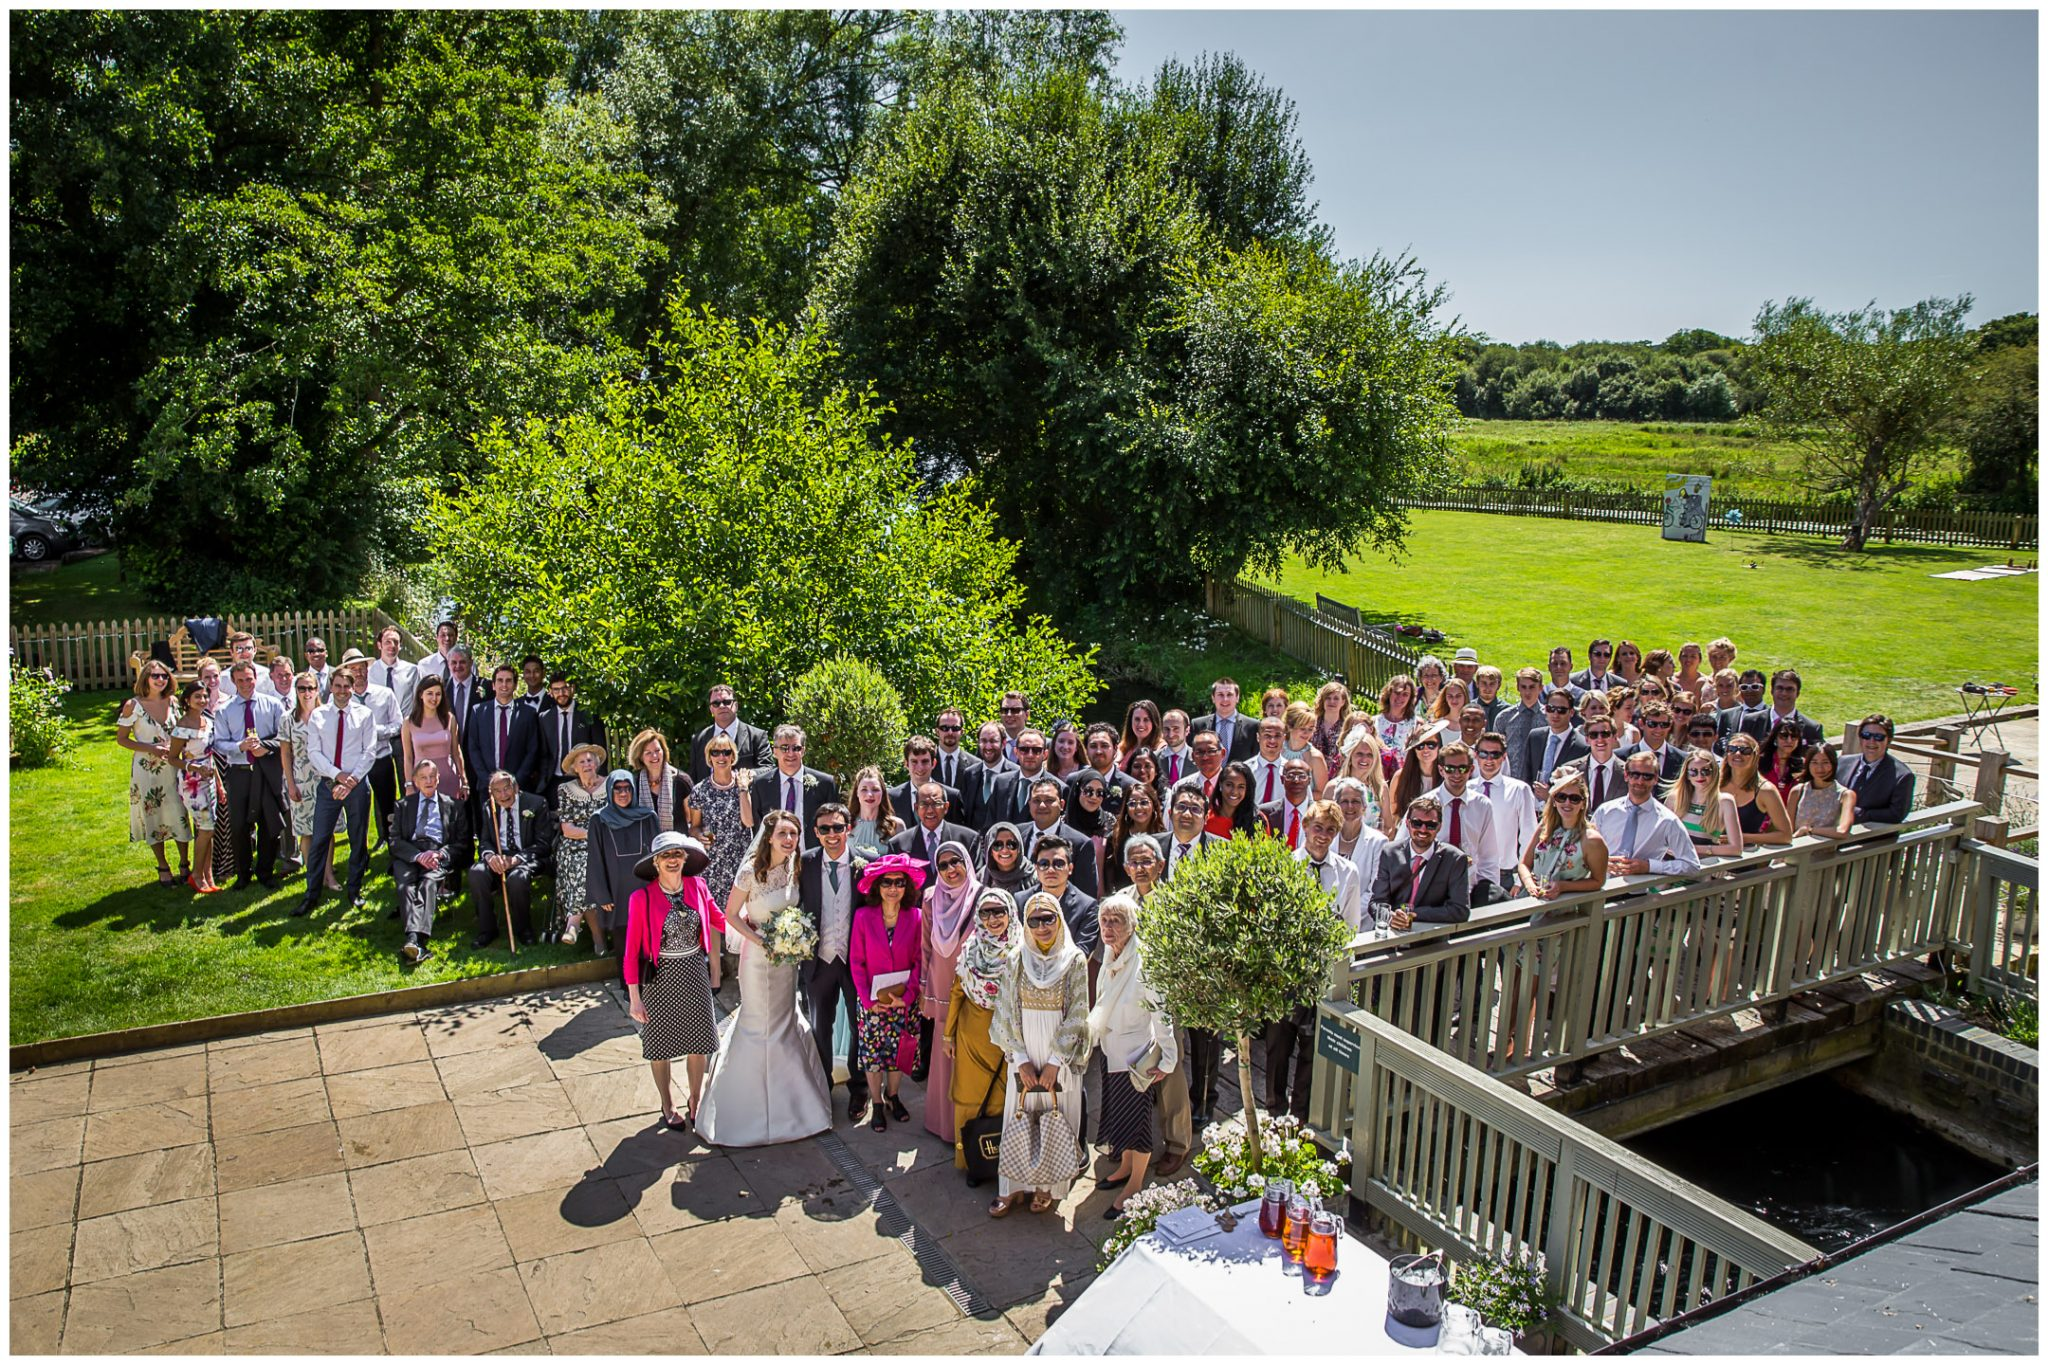 Sopley Mill Summer wedding large group photo by the river